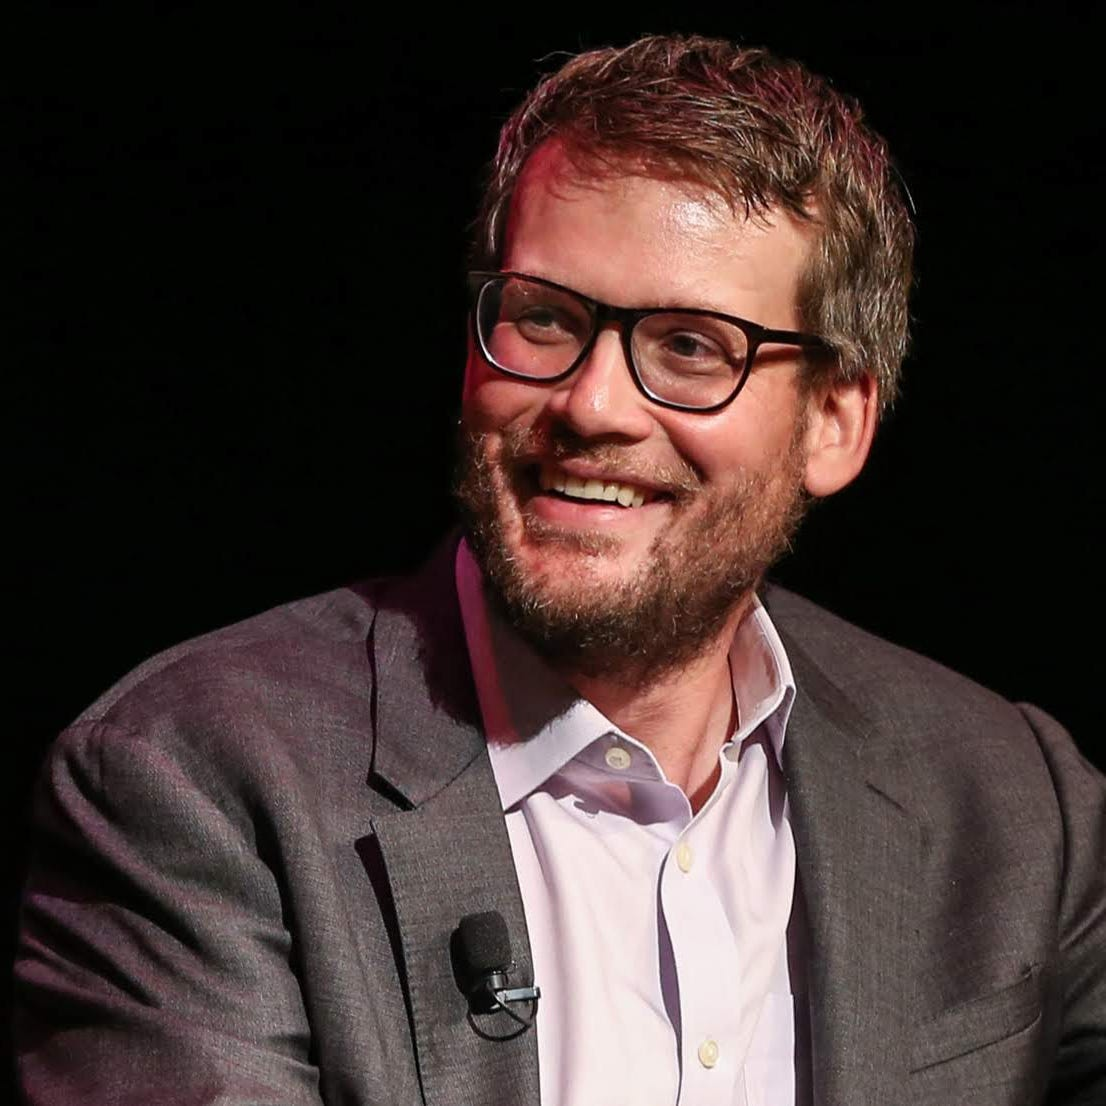 Why you won't see John Green on Twitter, Facebook and Instagram for at least 12 months